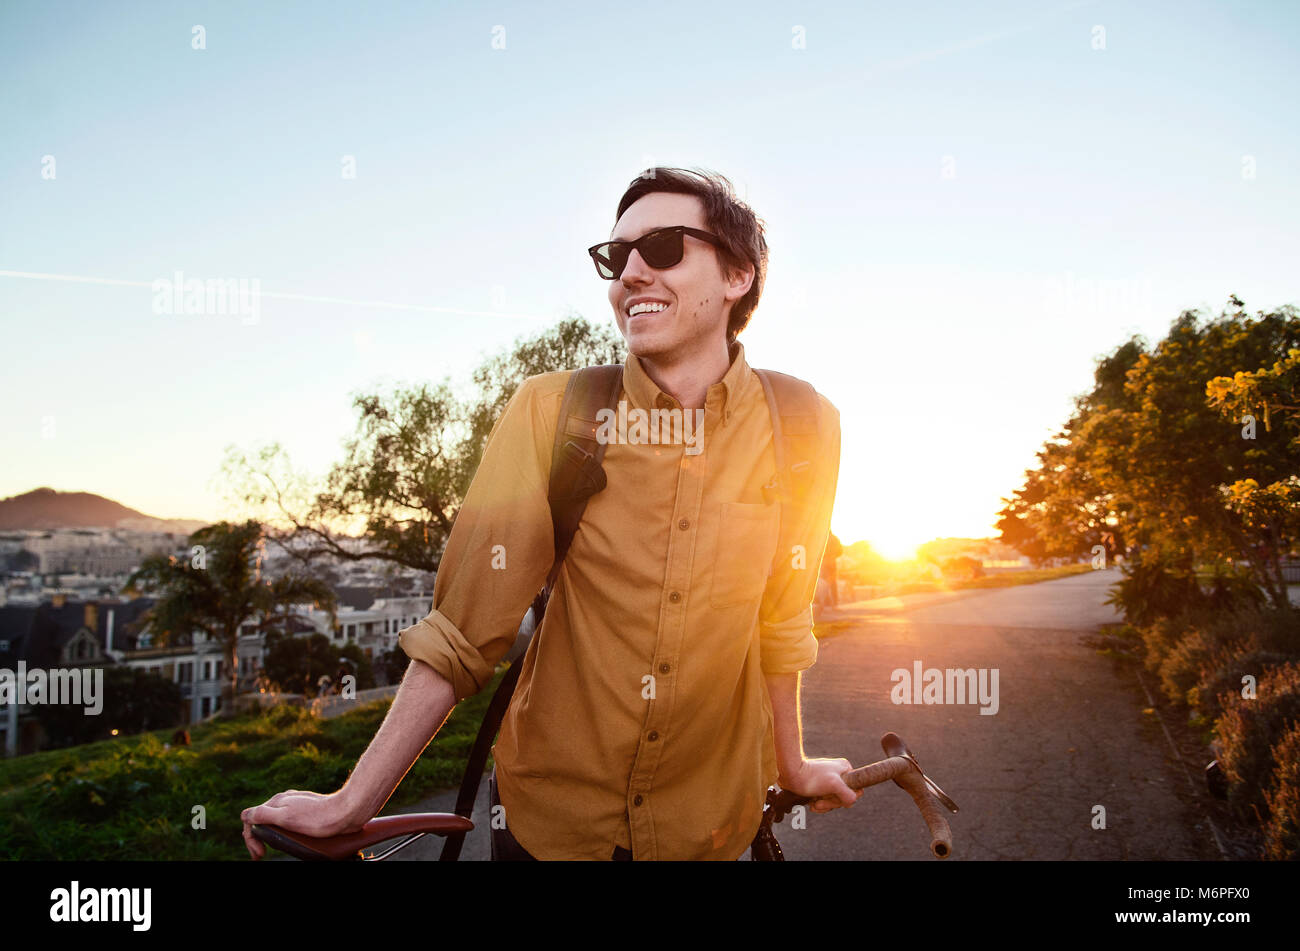 Young guy walking his bike through a park - Stock Image